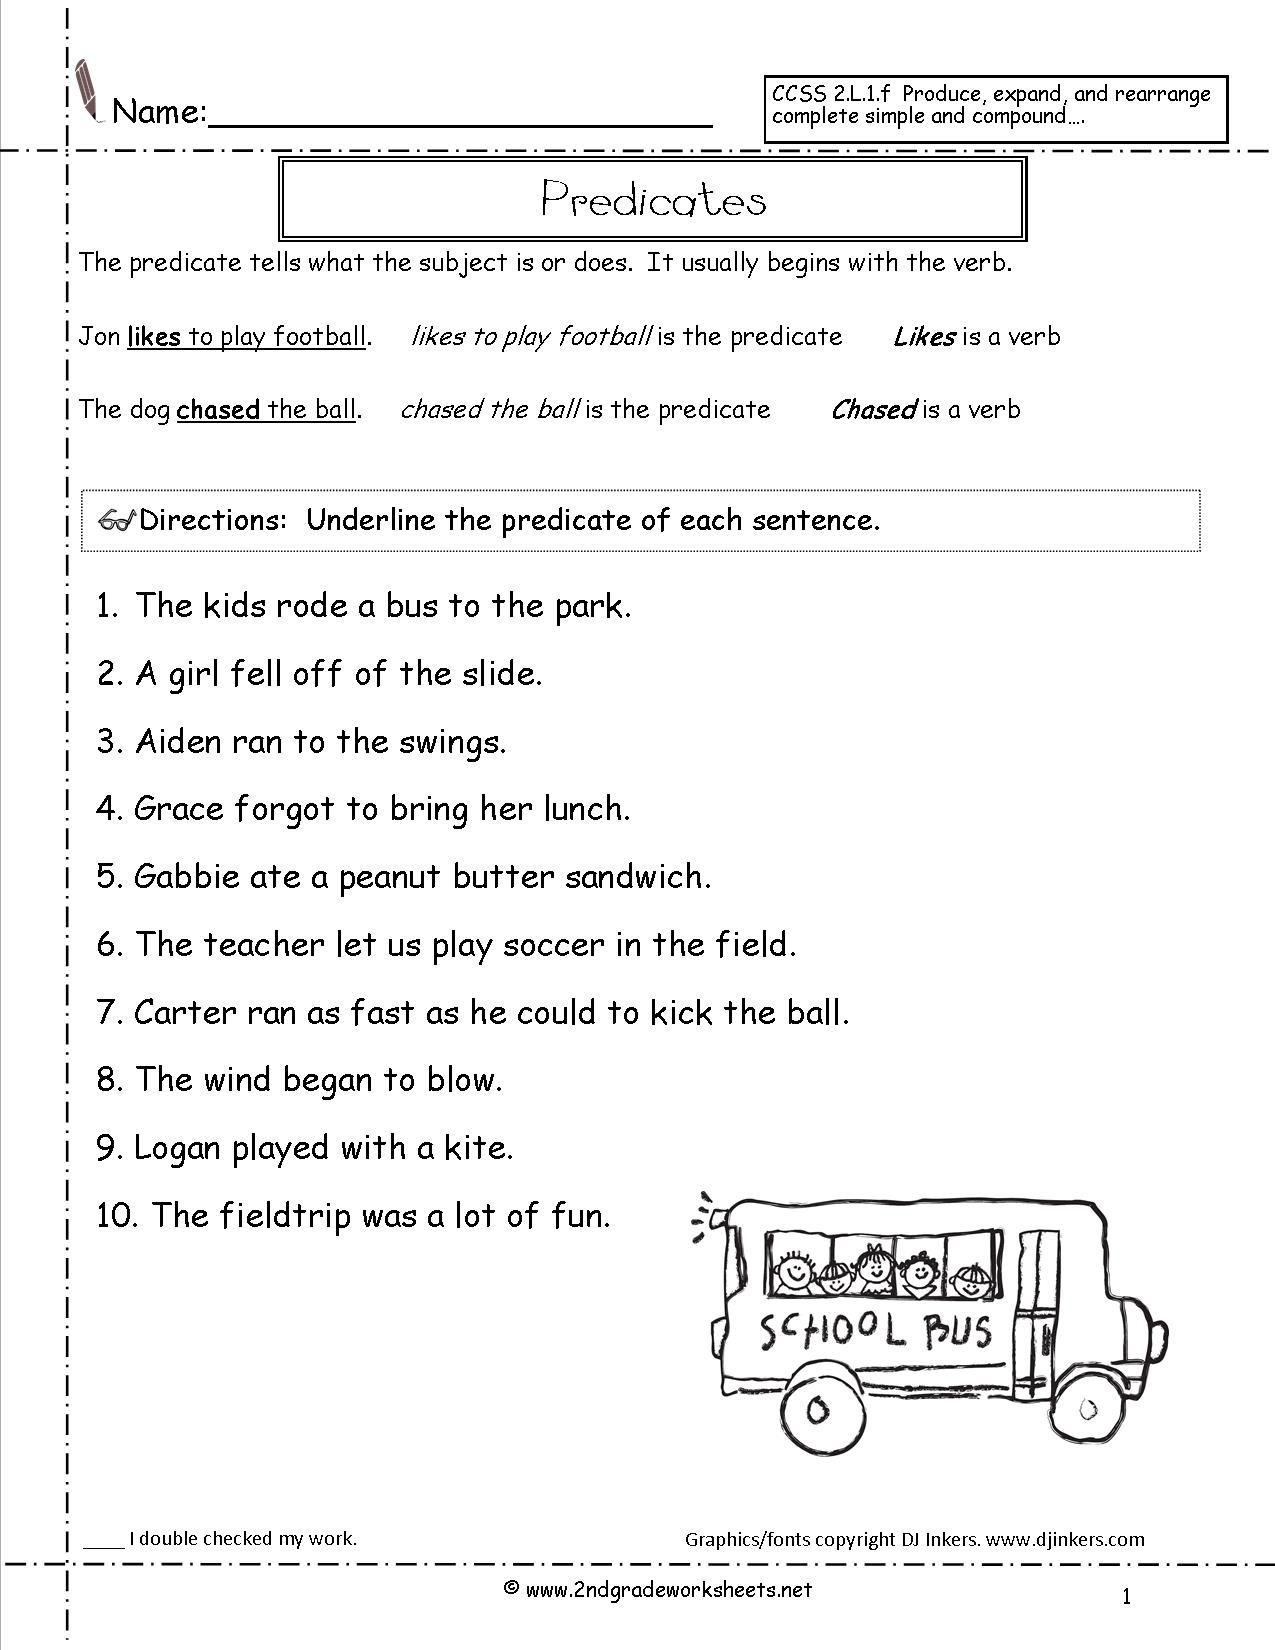 Second Grade Sentences Worksheets, Ccss 2.l.1.f Worksheets. - Free Printable Sentence Correction Worksheets